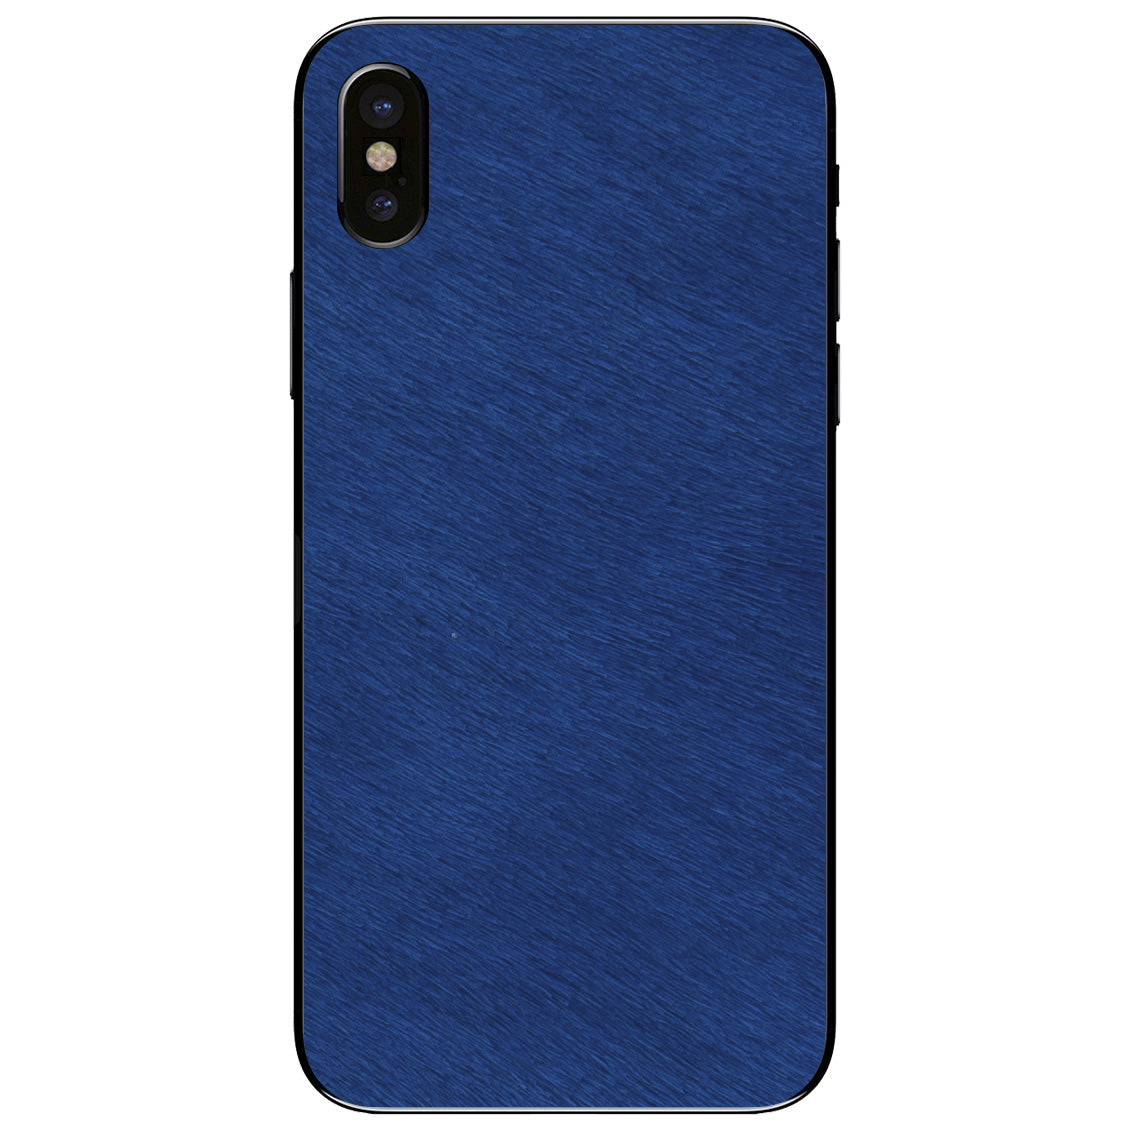 Cobalt Calf Hair iPhone X Leather Skin